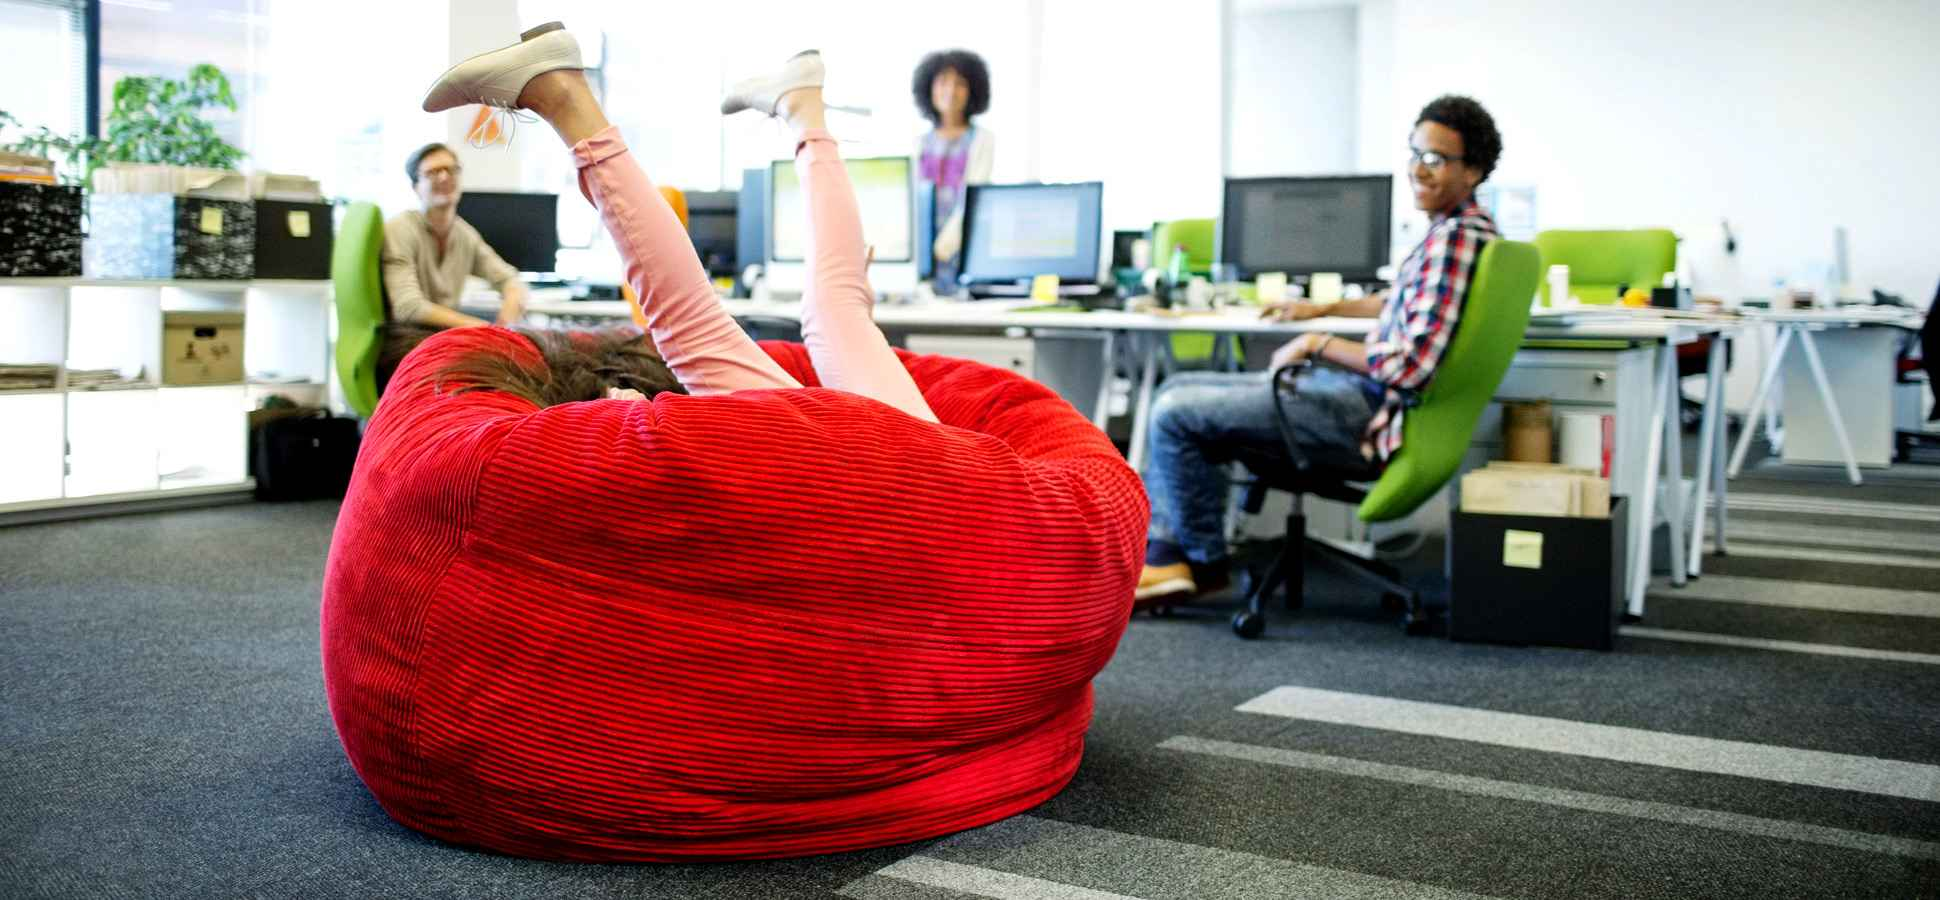 10 Cheap Ways to Reduce Employee Stress